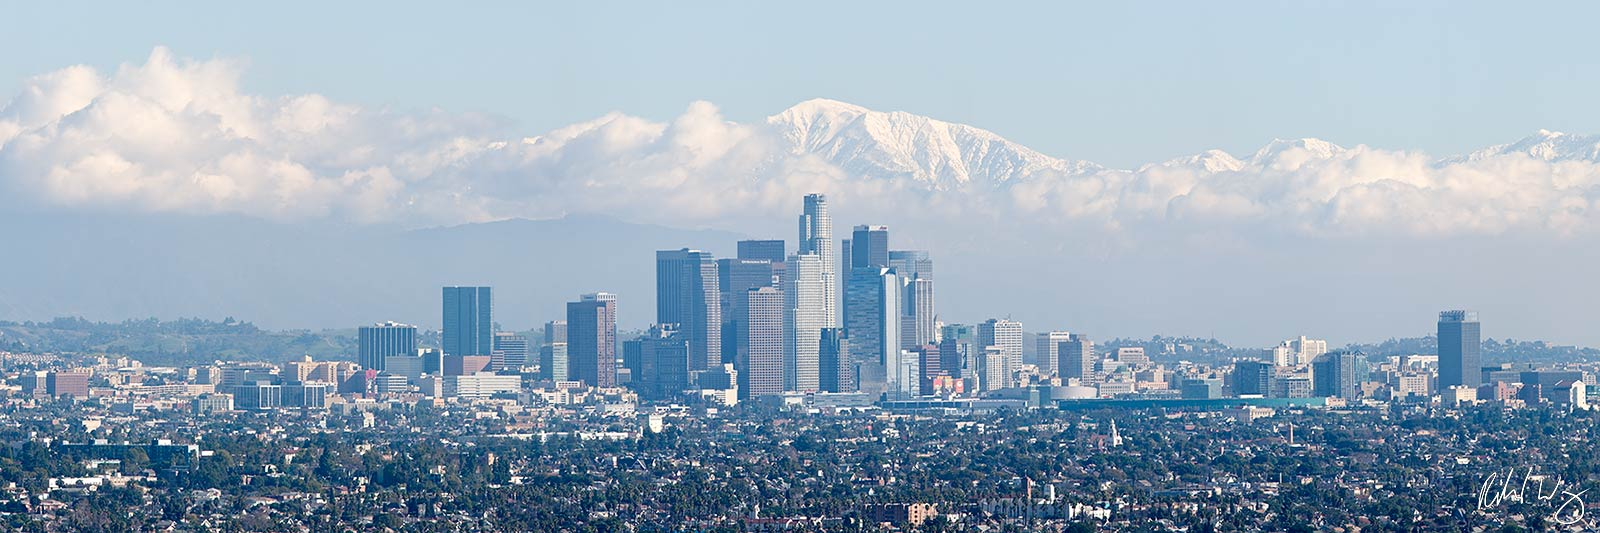 Los Angeles Panoramic Photo After Winter Storm, California, photo, photo